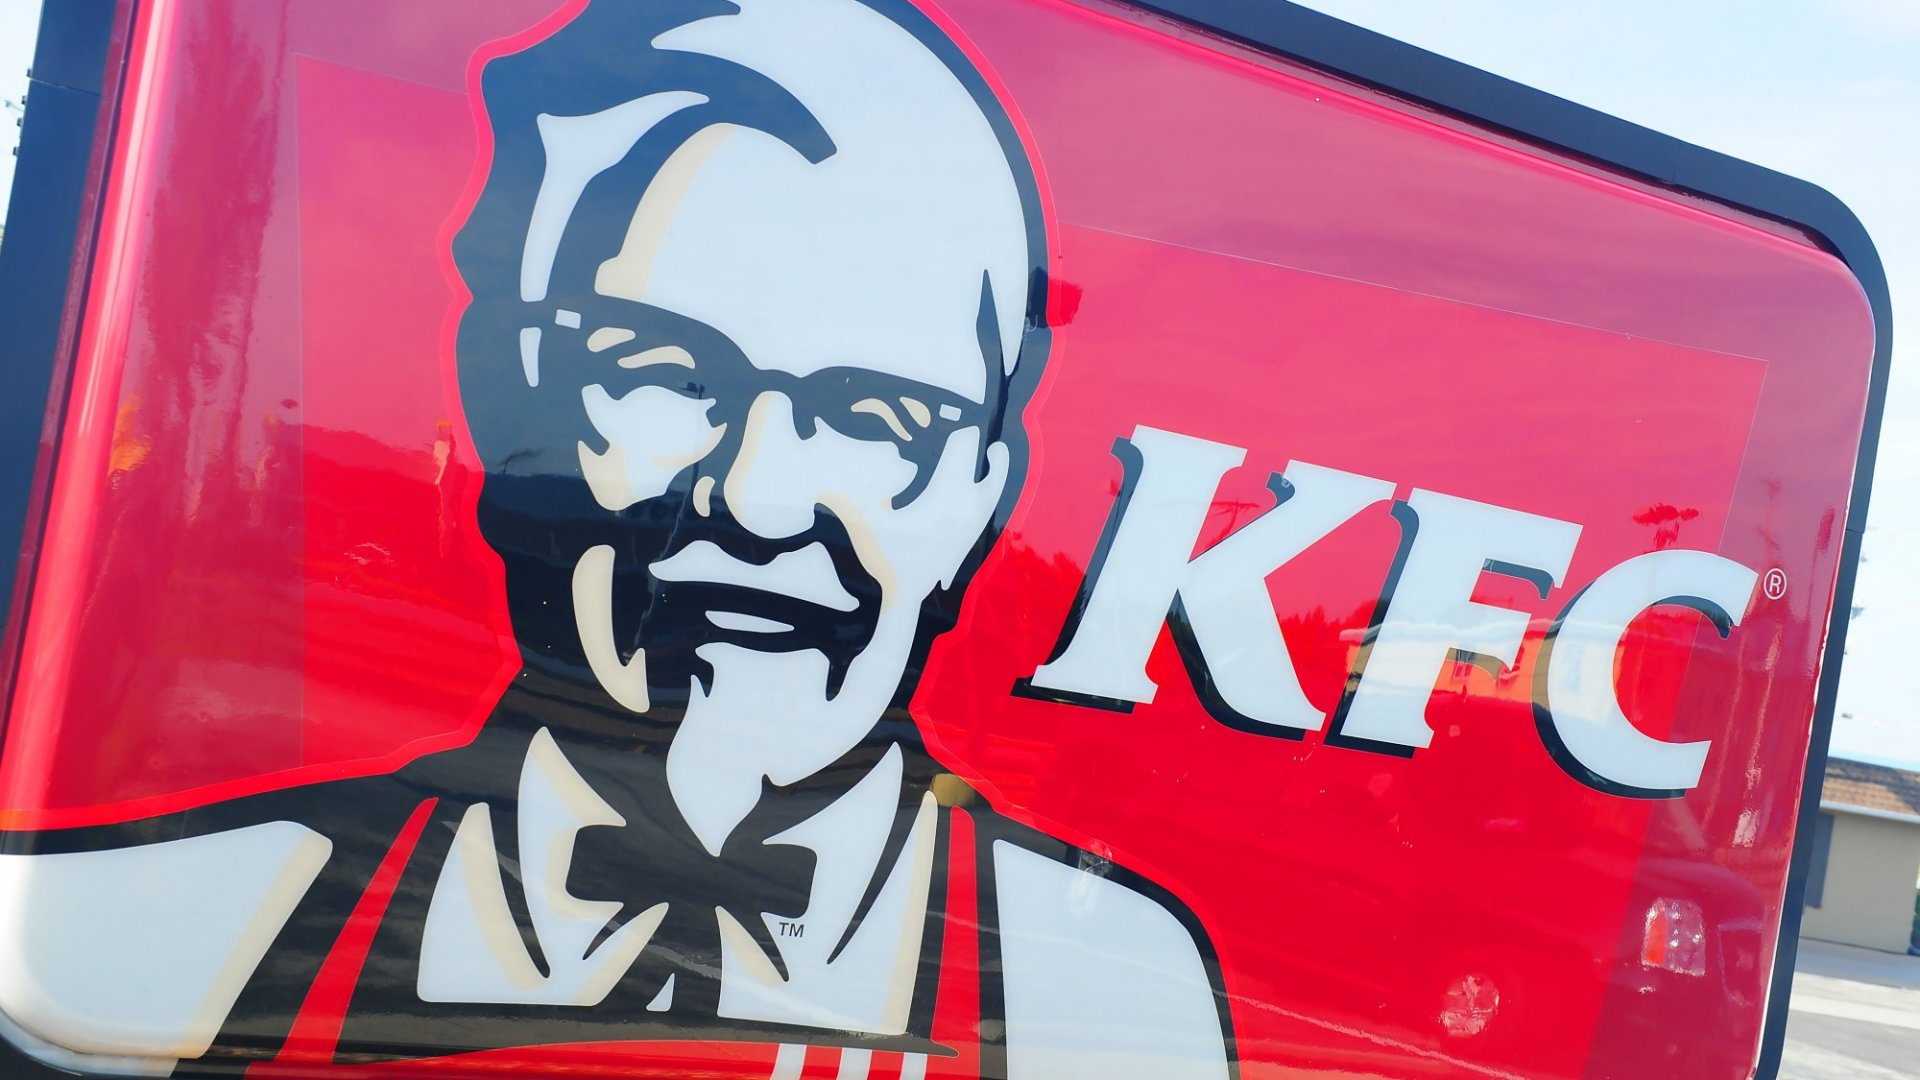 In 1 Tweet, KFC Gave a Master Class In How To Win The Internet